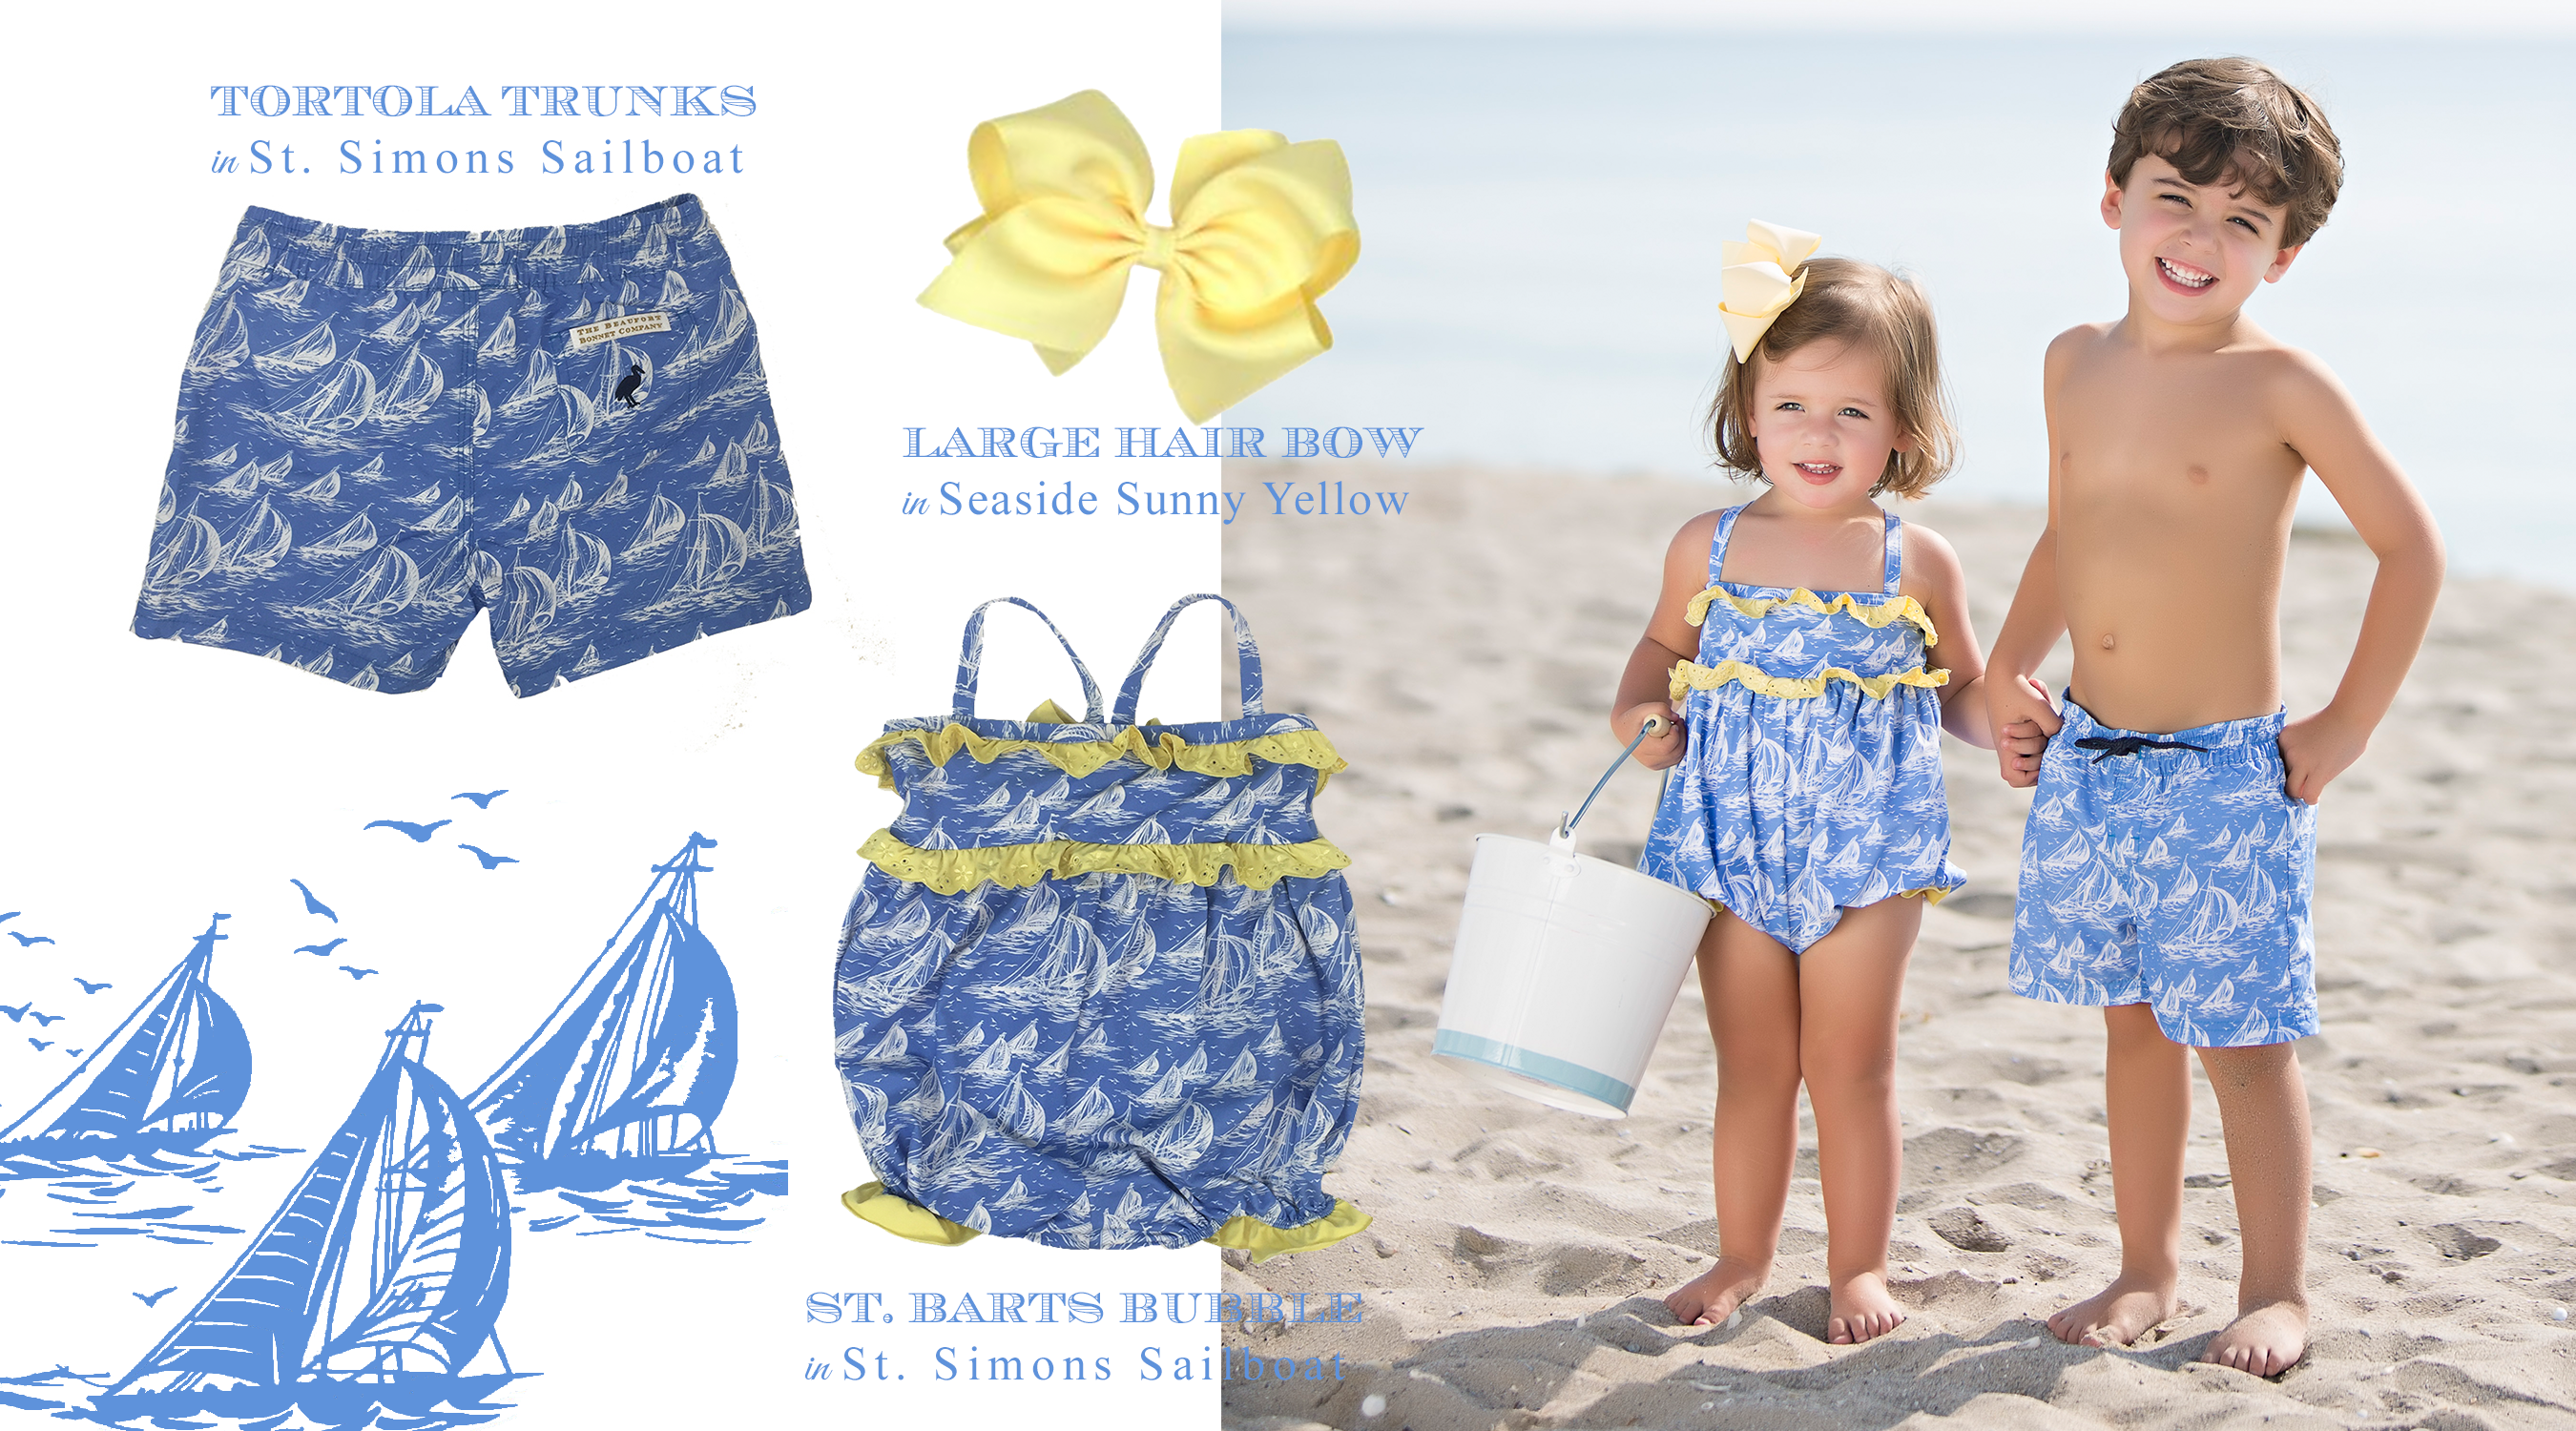 St. Simons Sailboat Swimwear